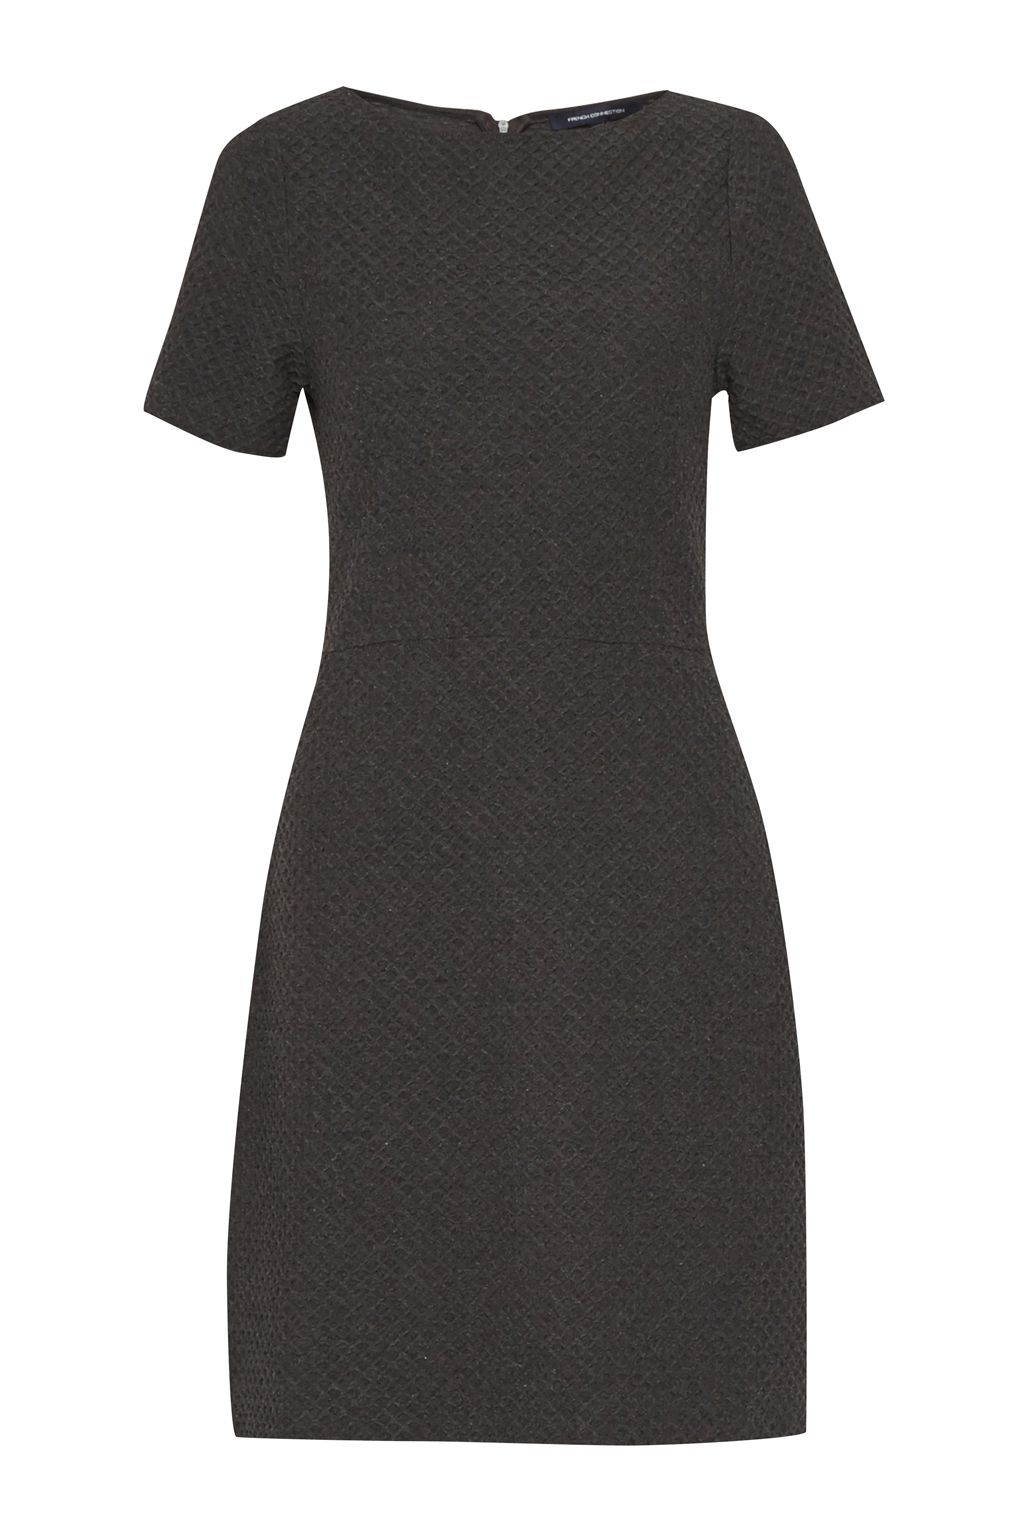 French Connection Dixie Textured Dress, Charcoal